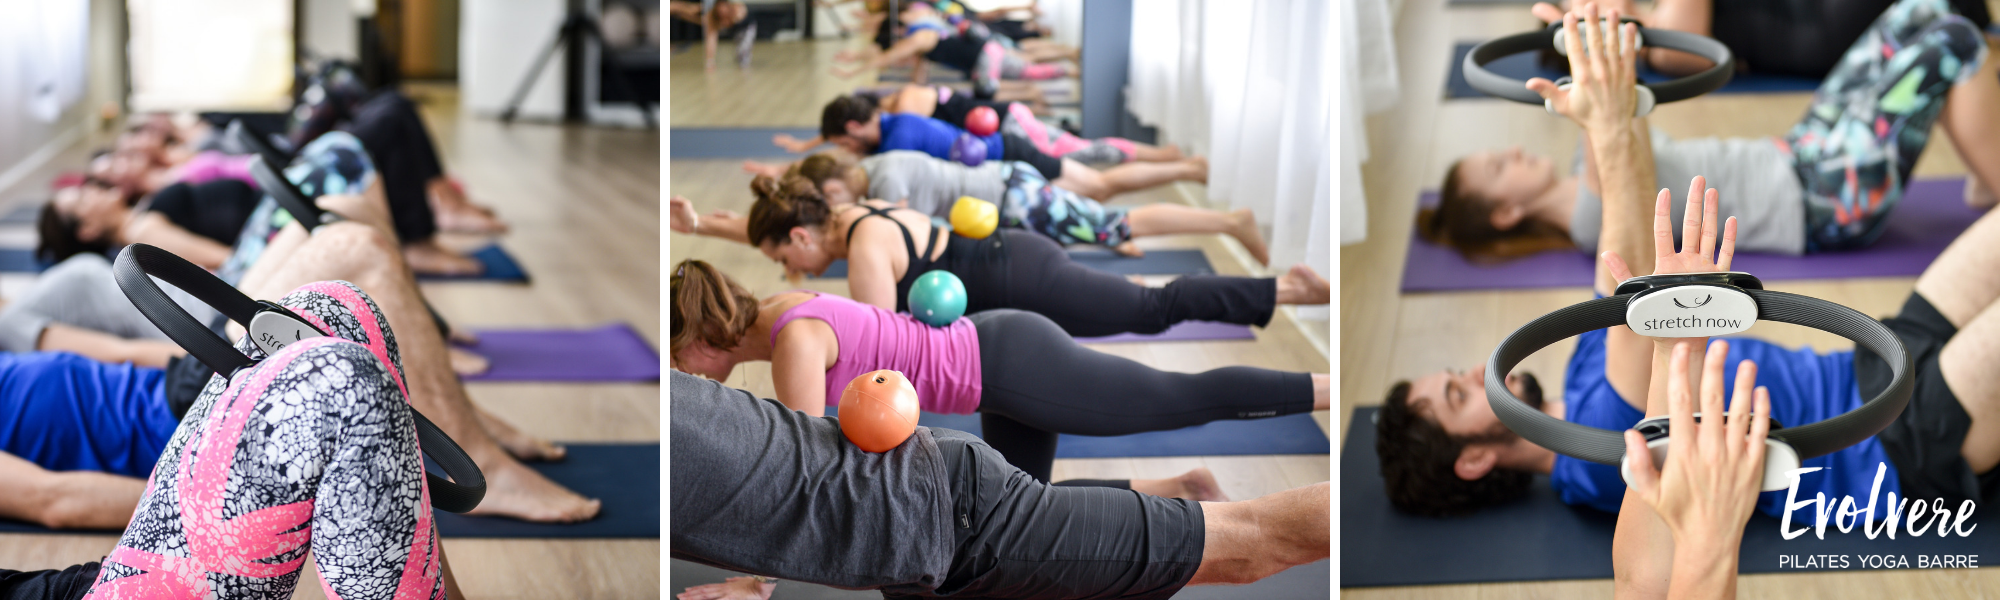 Pilates classes in Lane Cove at Evolvere Pilates Yoga Barre studio